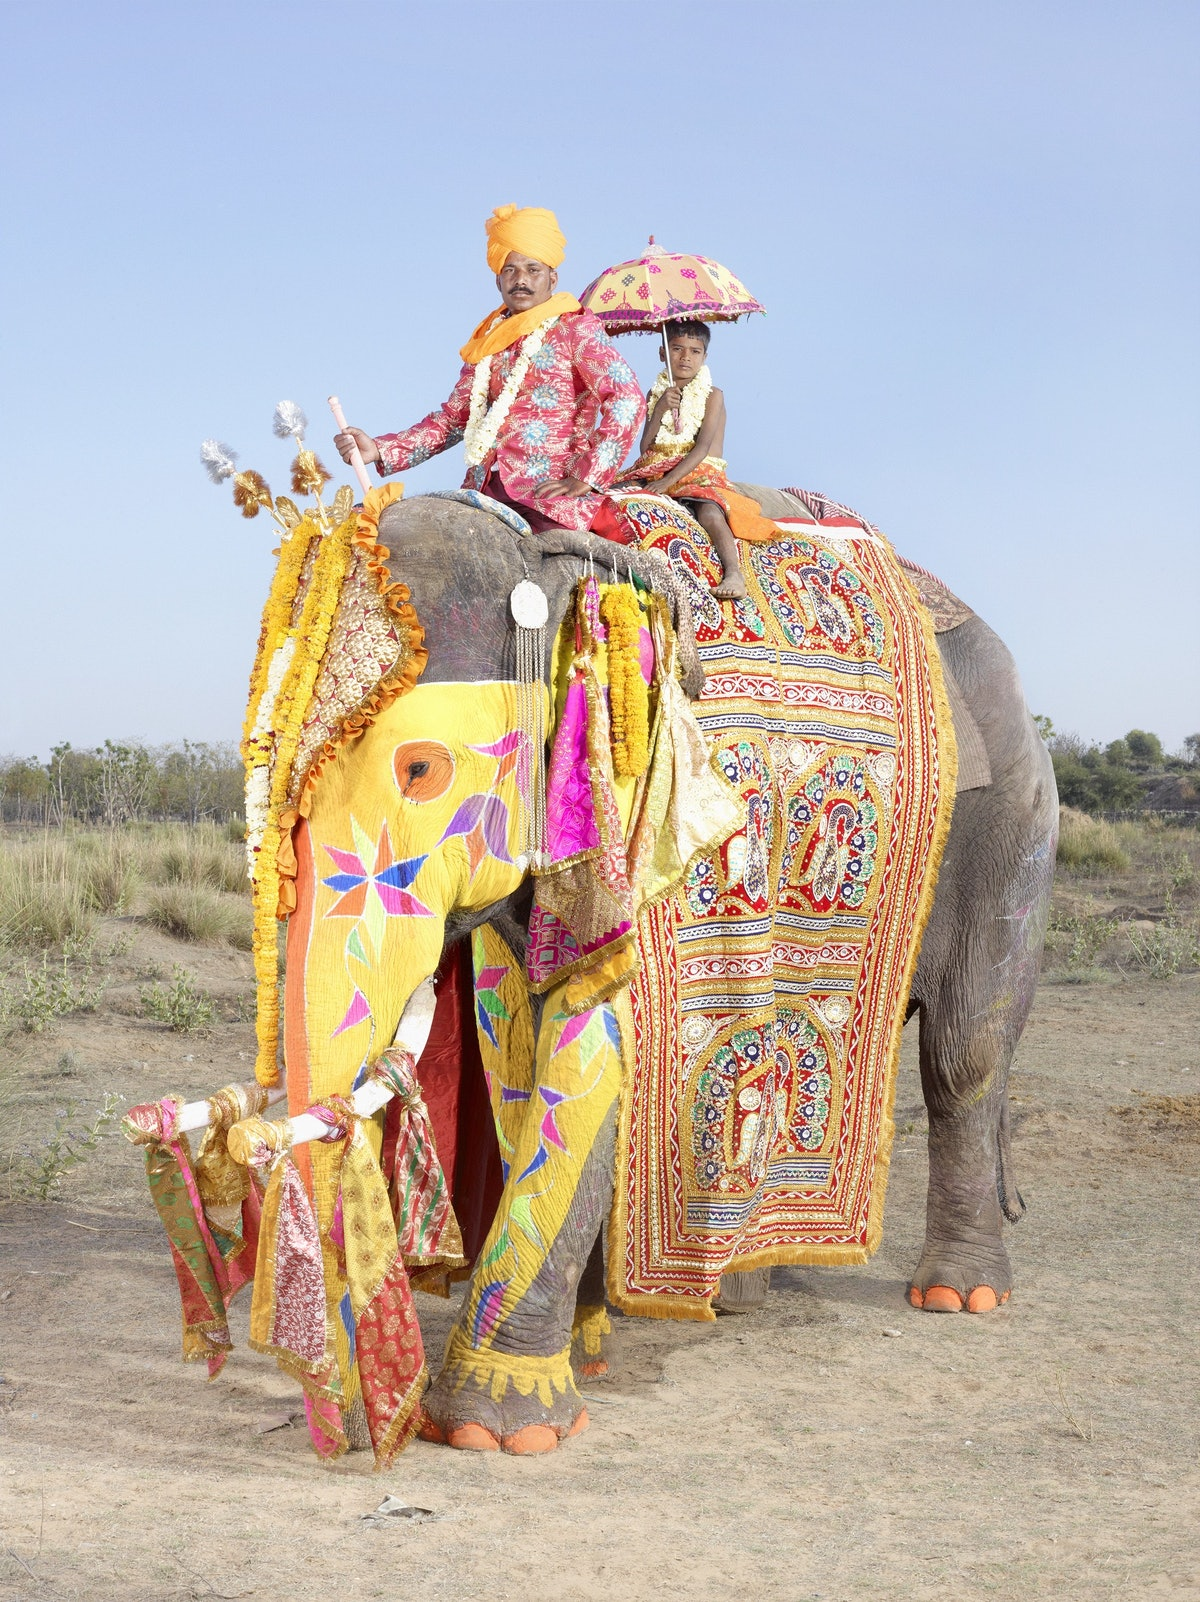 From the Painted elephants series, India, 2013 - Photo by Charles FrÇger.jpg